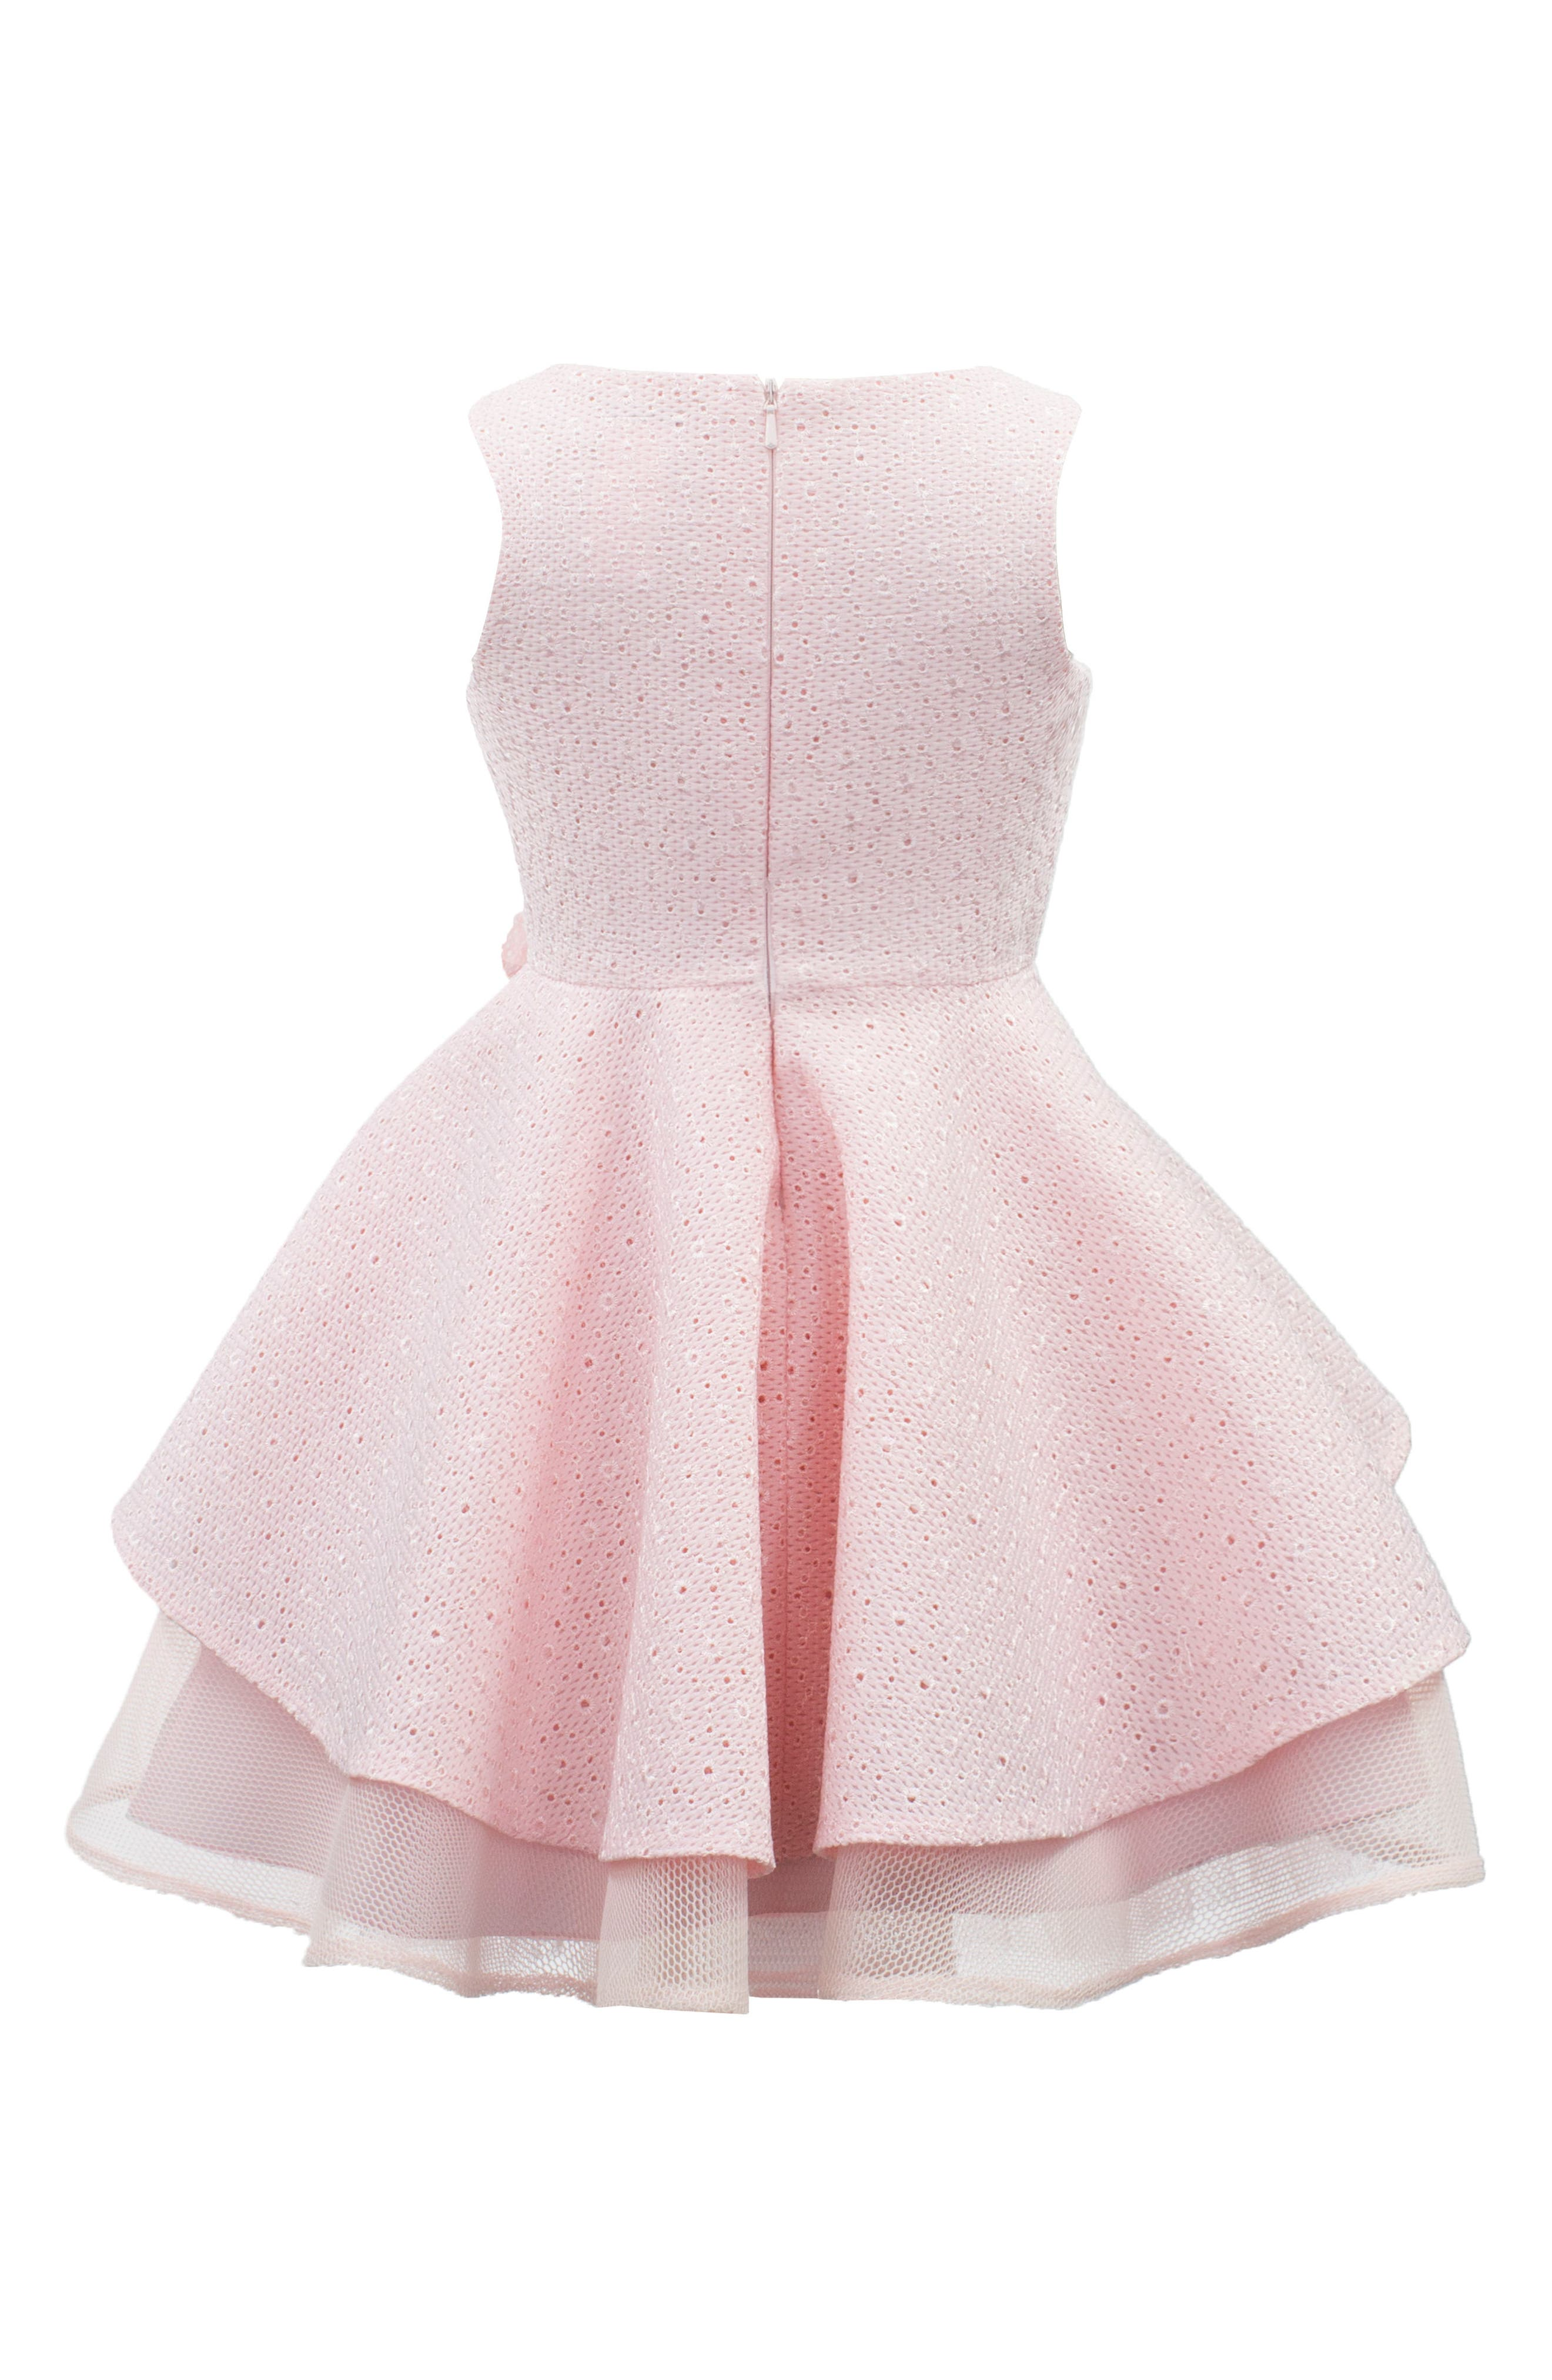 Broderie Anglaise Techno Mesh Dress,                             Alternate thumbnail 3, color,                             Pink